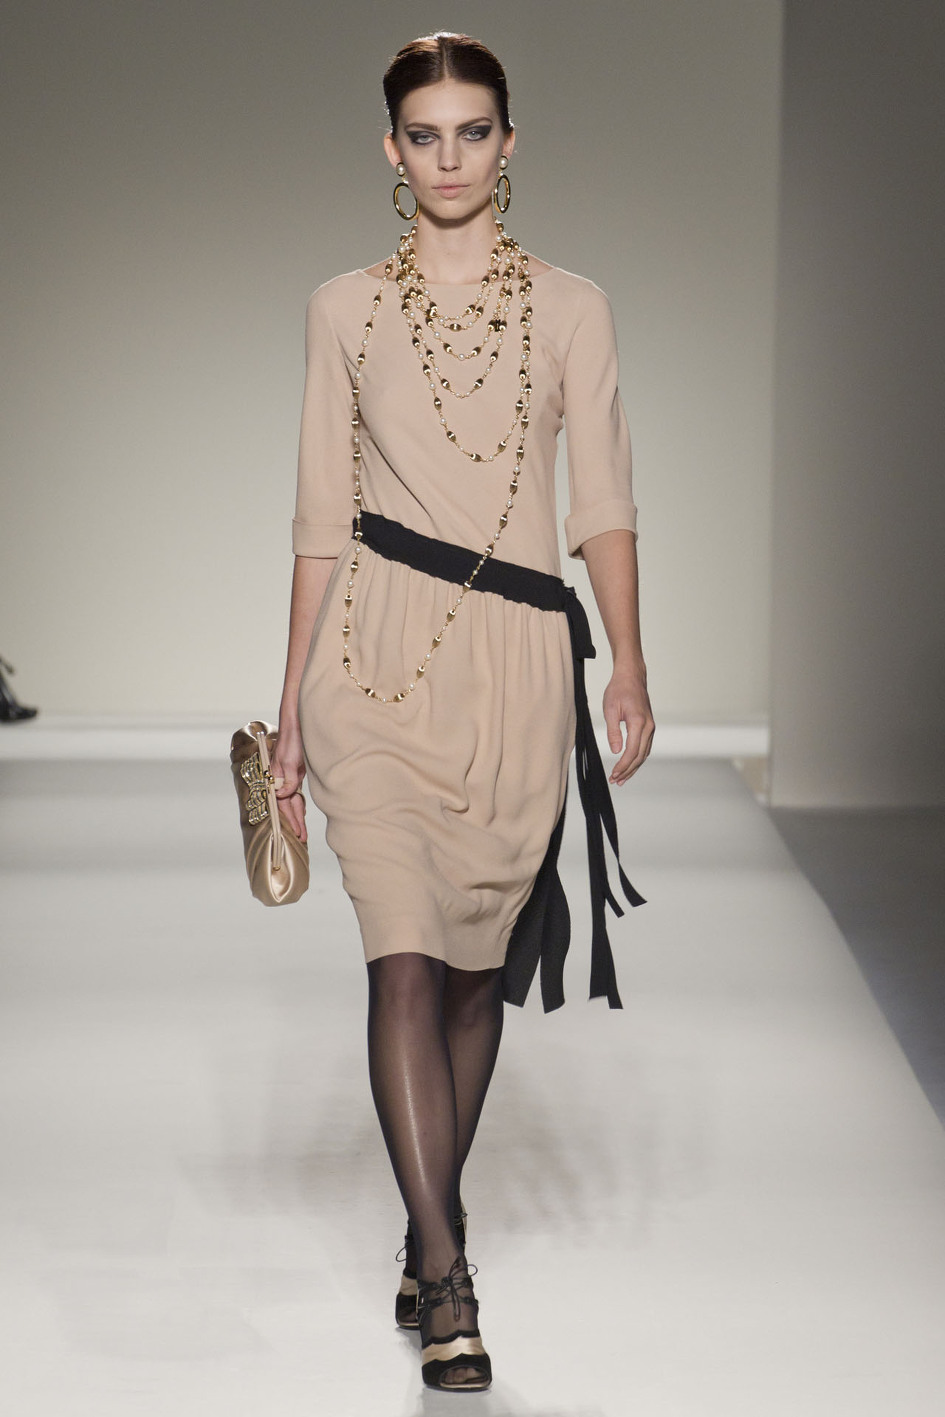 Moschino Fall/Winter 2011.12 Ready-To-Wear Milan